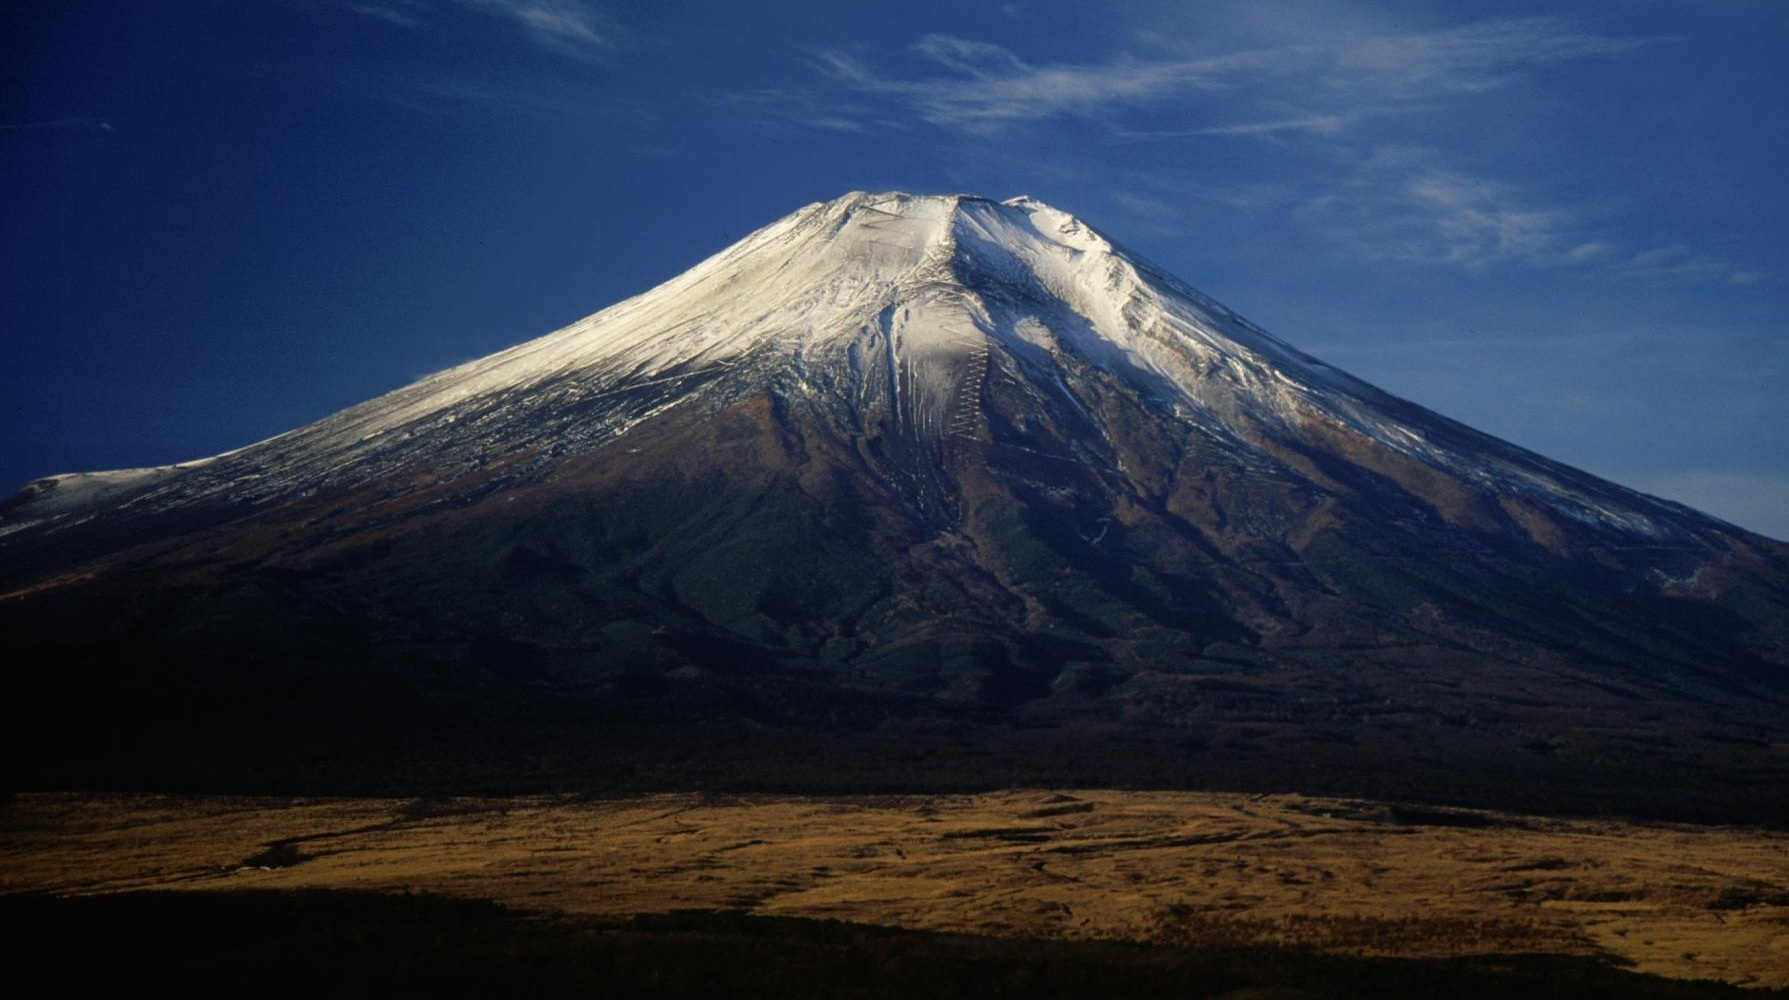 Every Japanese citizen should climb Mount Fuji at least once in their lifetime. For other nationalities it's highly recommended. Climbing Japan's highest (3776m) and most prominent mountain is a life changing achievement.